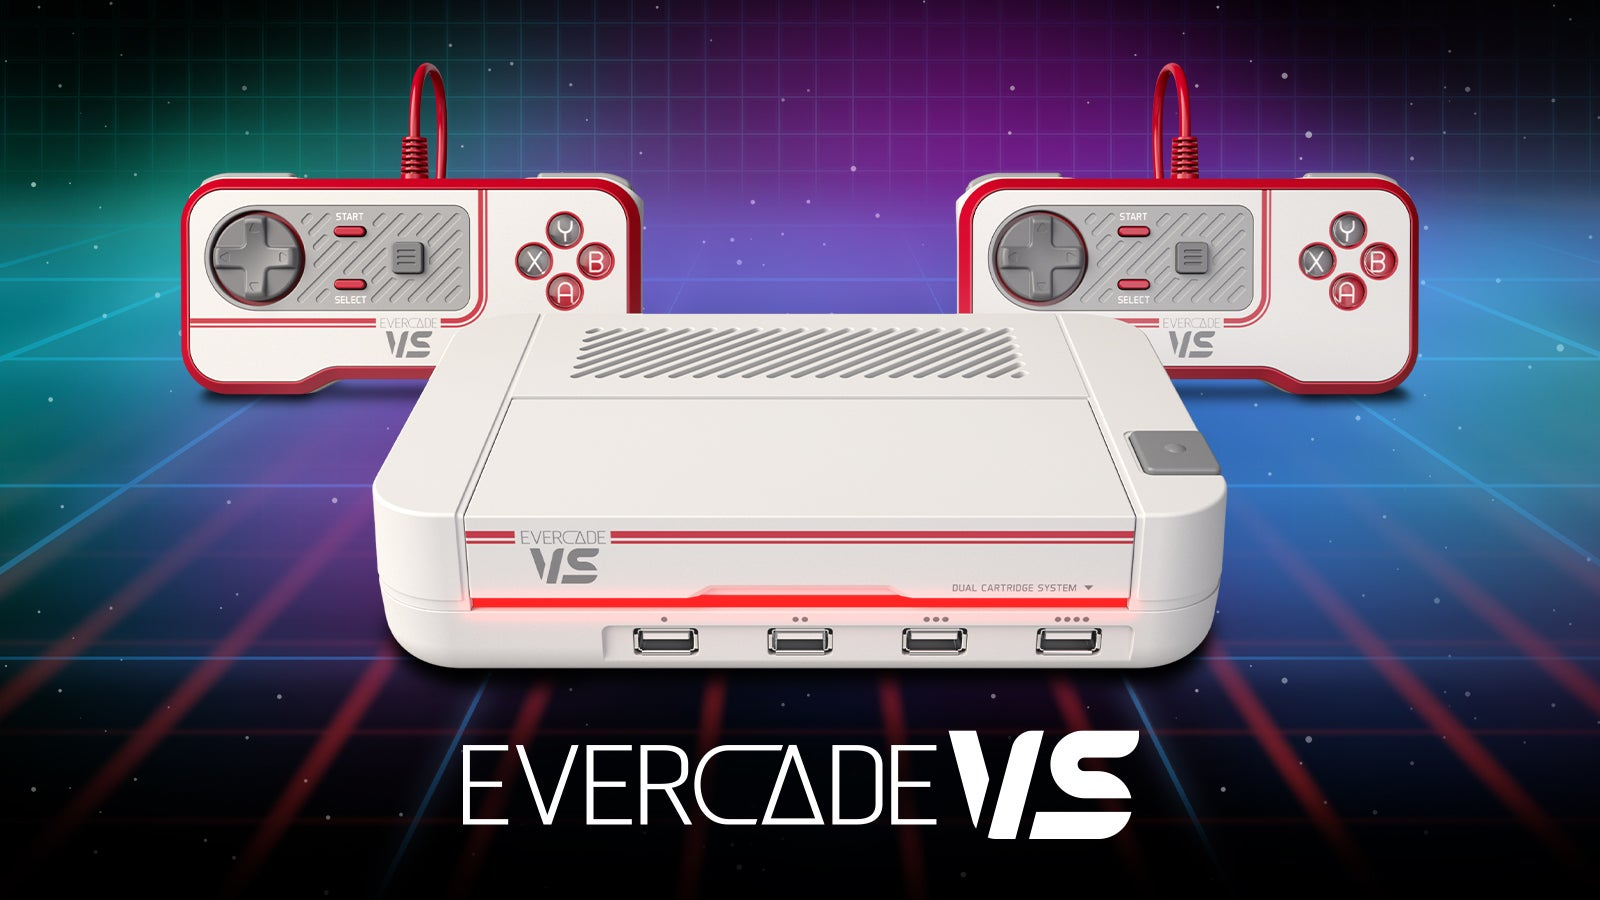 Evercade VS video gaming console with contrtollers